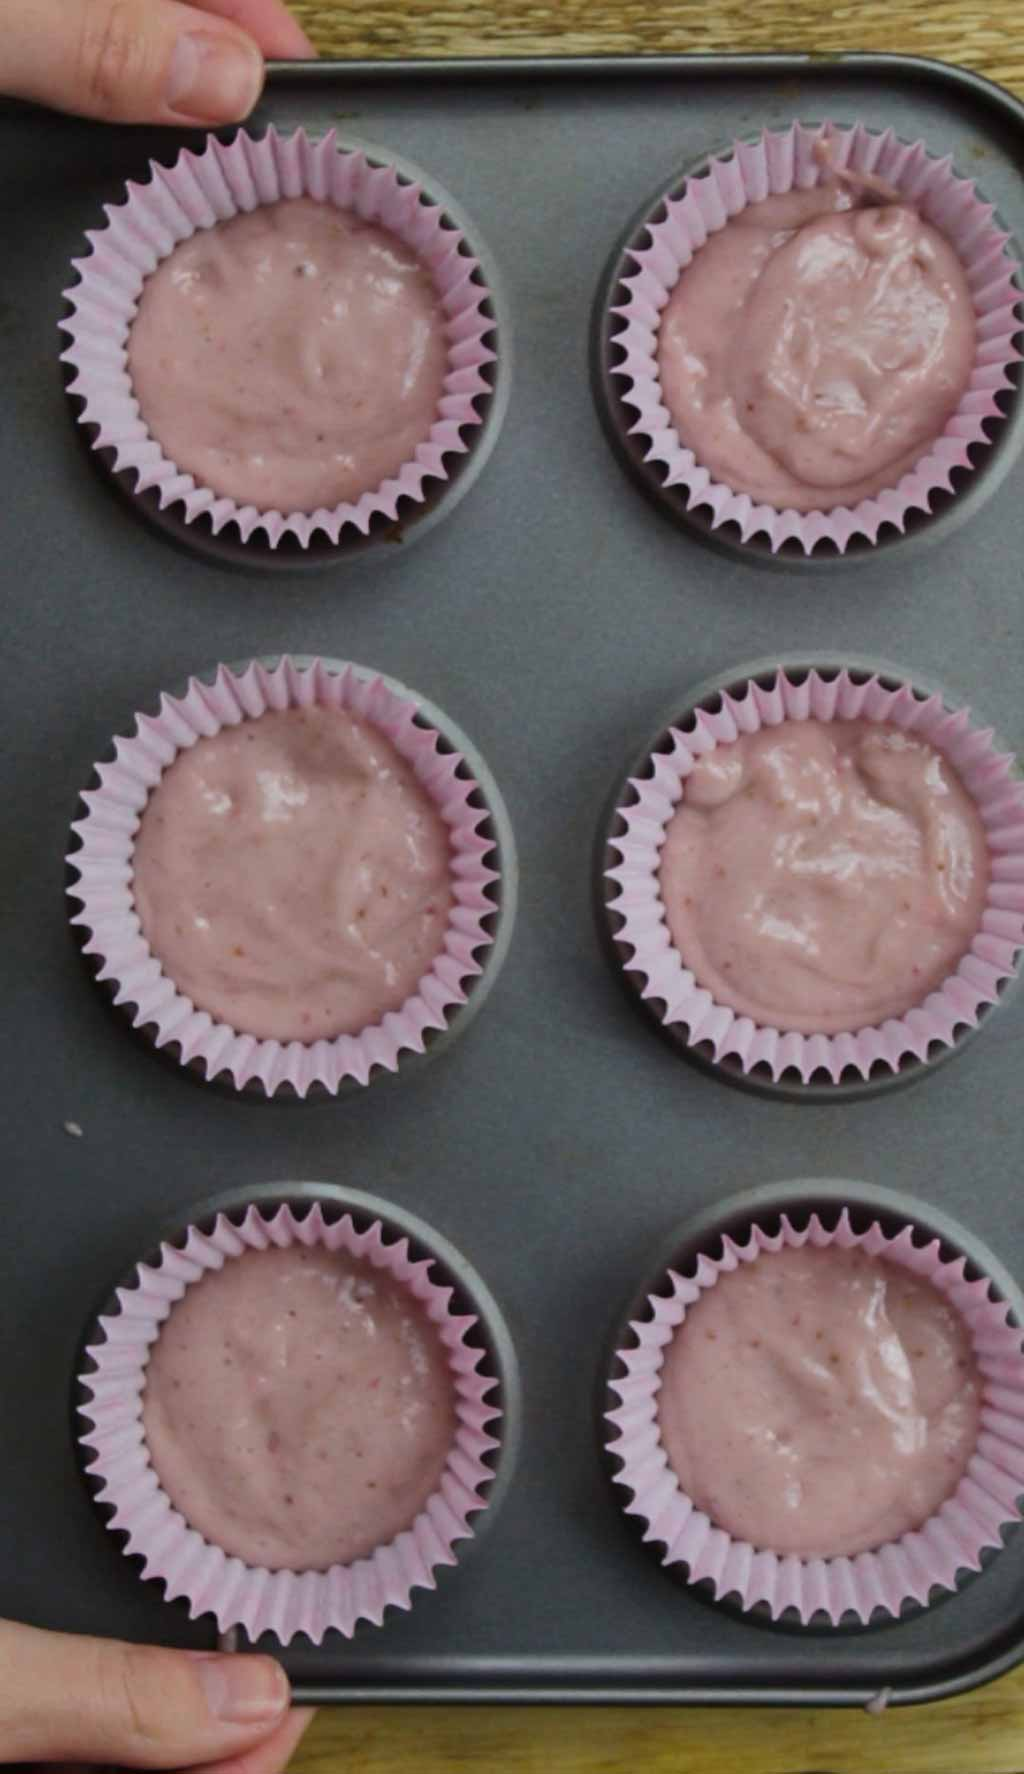 Cake Batter In Pink Cases In A Cupcake Tray